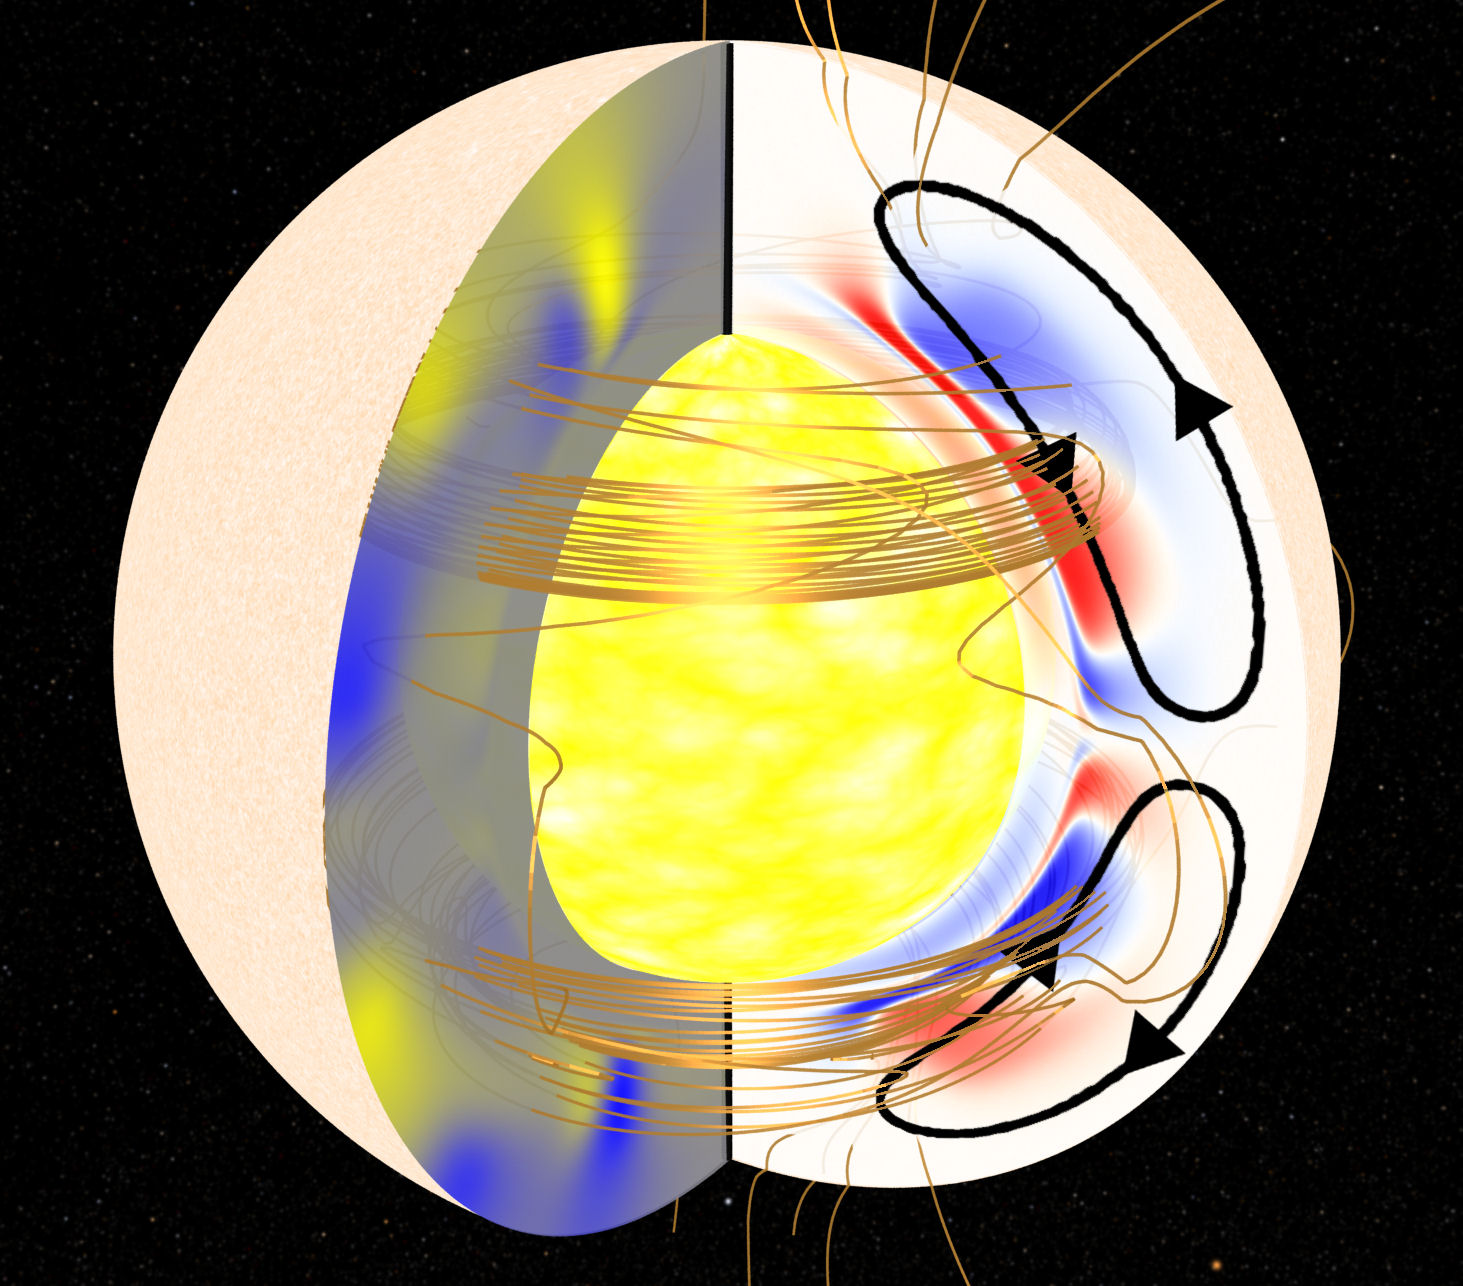 Stellar surface to the interior golden lines denote magnetic fields